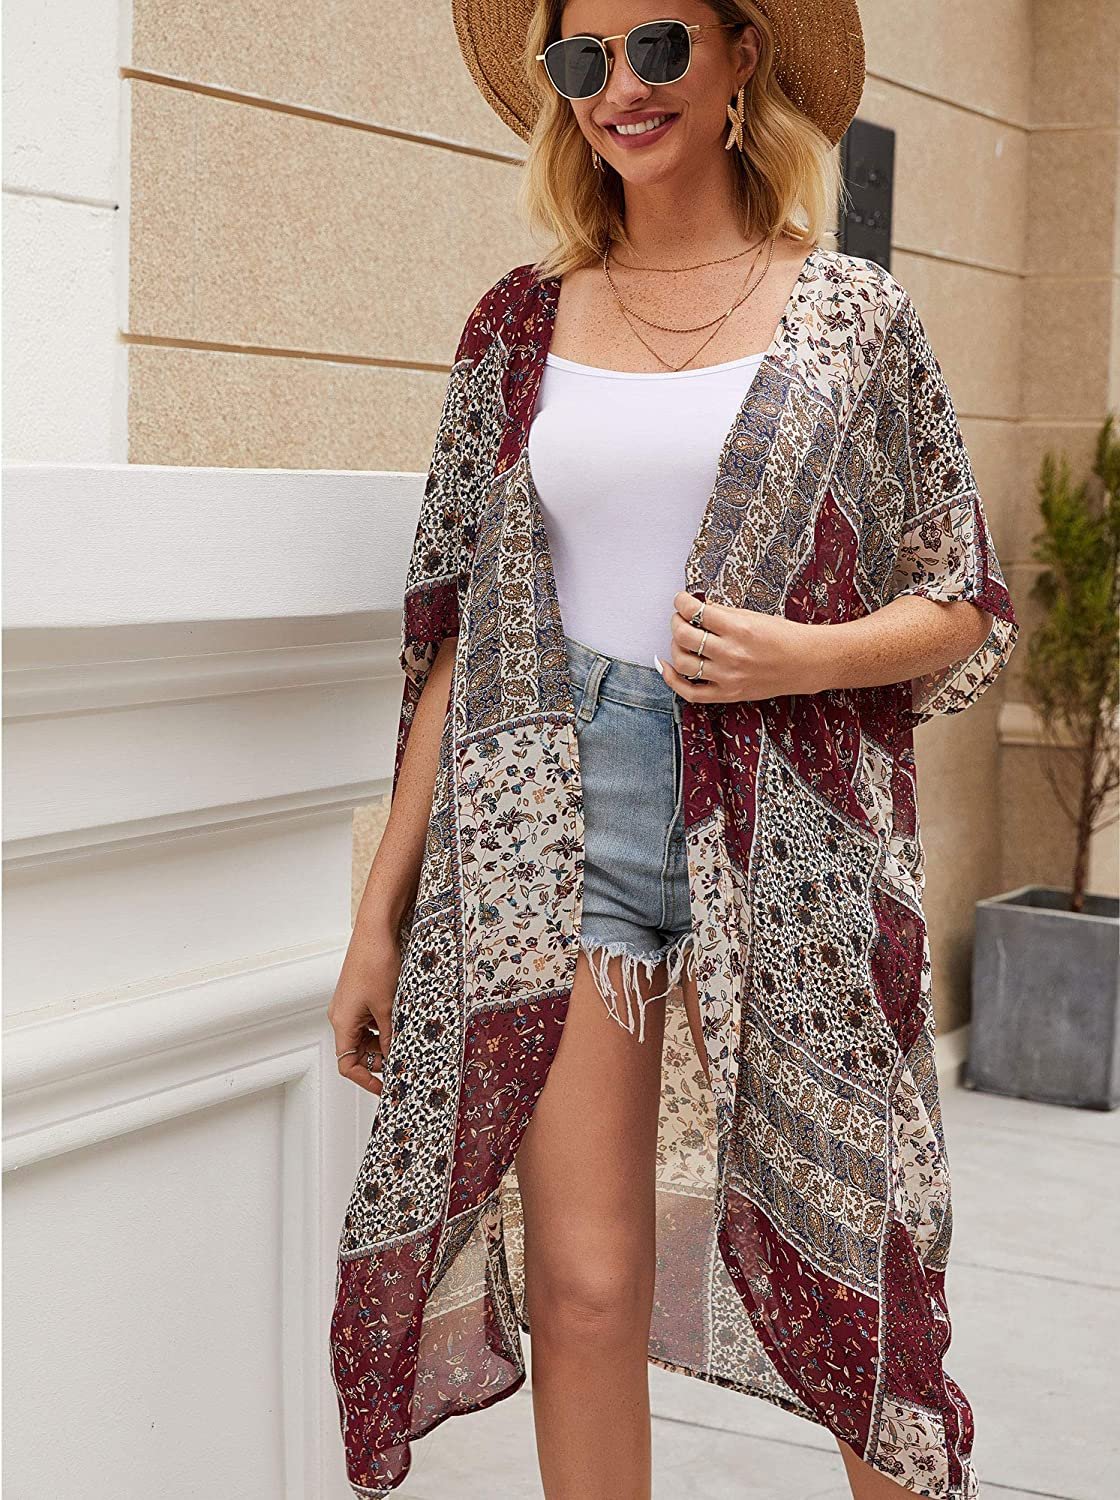 Naivikid Womens Floral Print Kimono Sheer Chiffon Loose Cardigan Casual Open Front Cover up S-3XXL